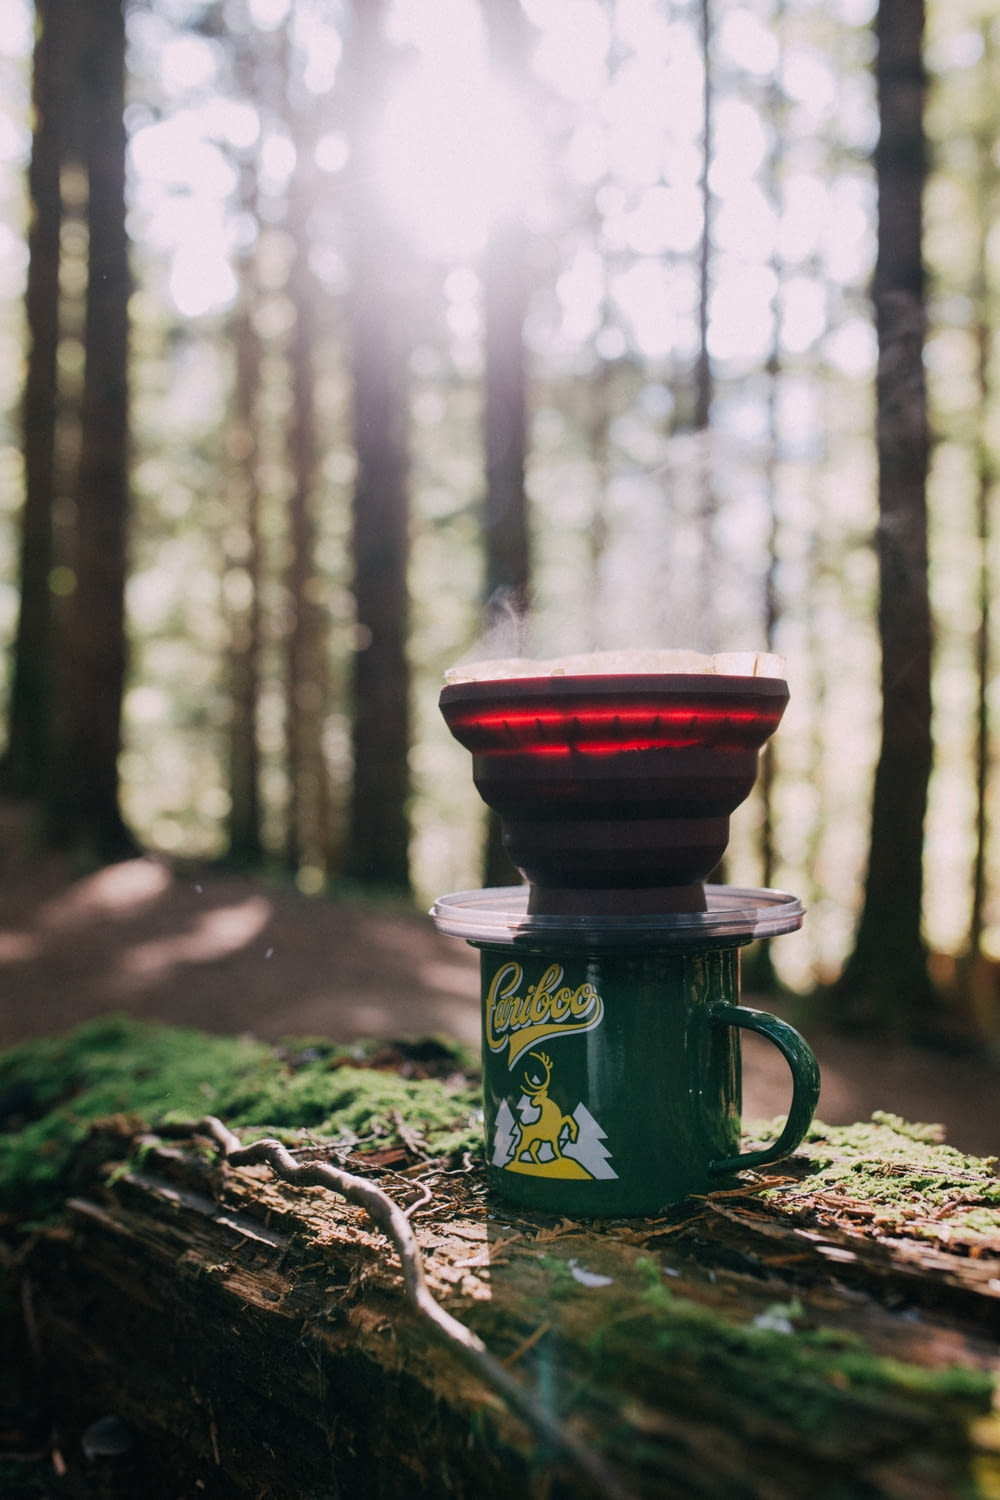 red and green ceramic mug on brown wooden log